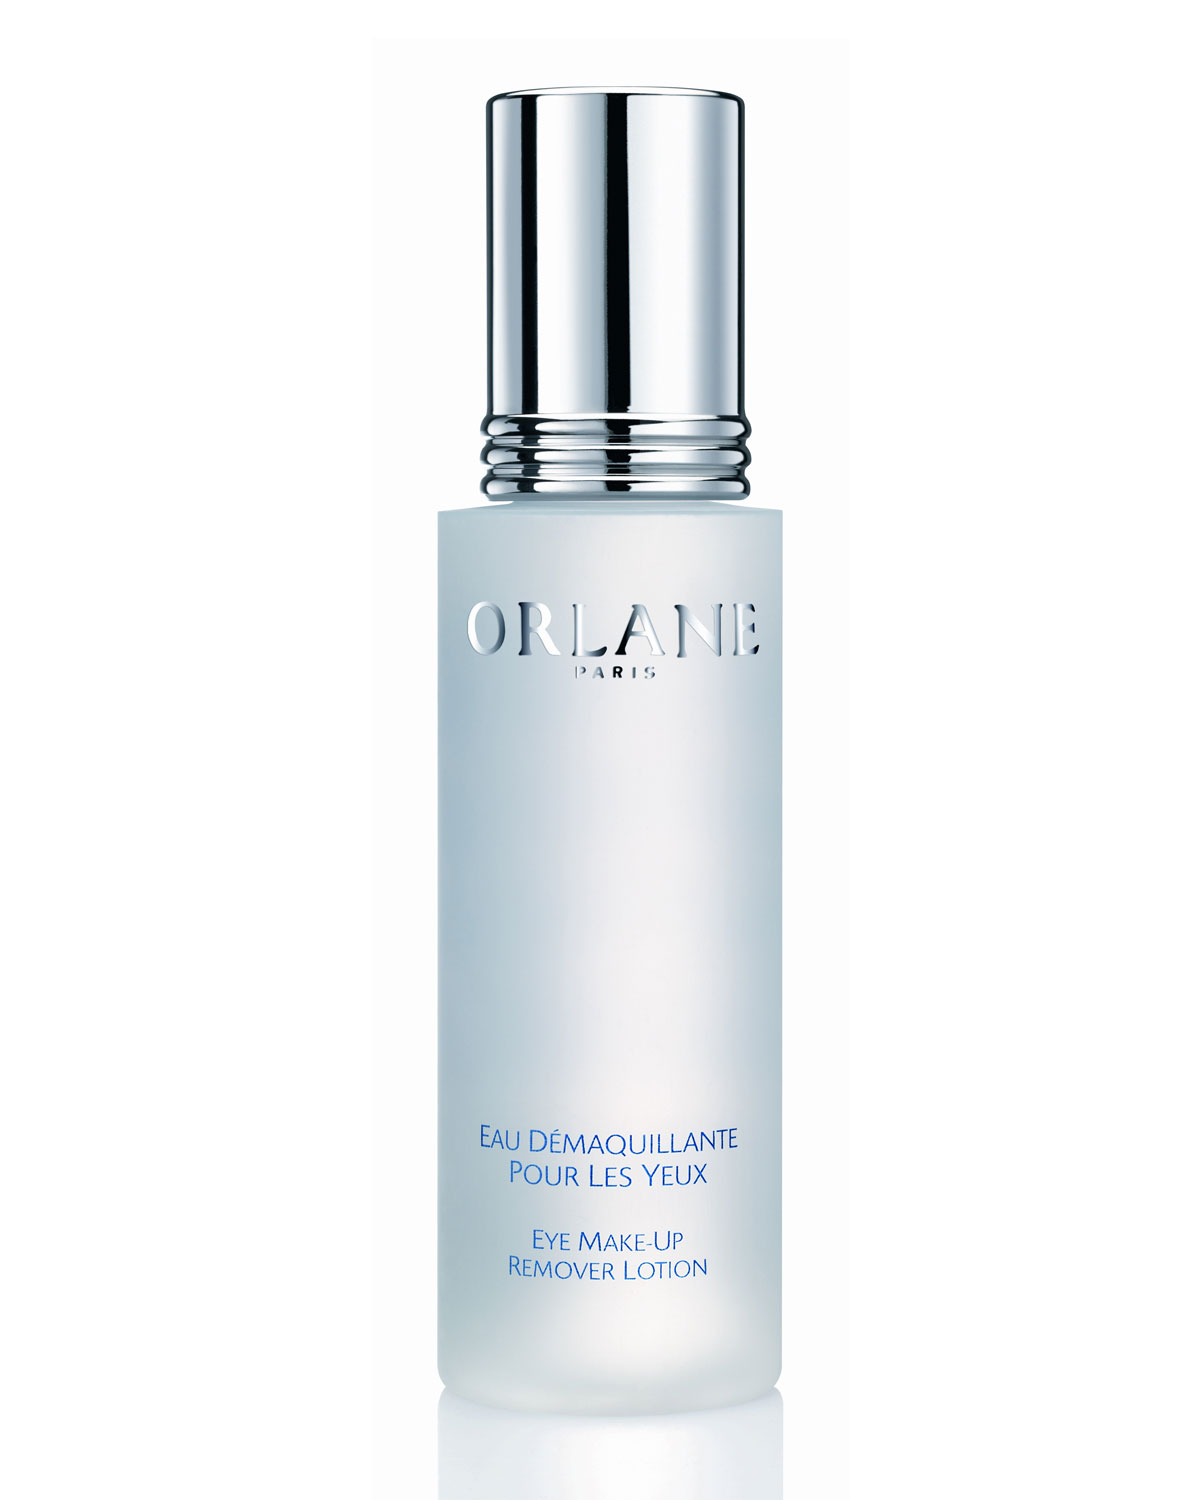 Orlane 3.4 oz. Eye Make-Up Remover Lotion